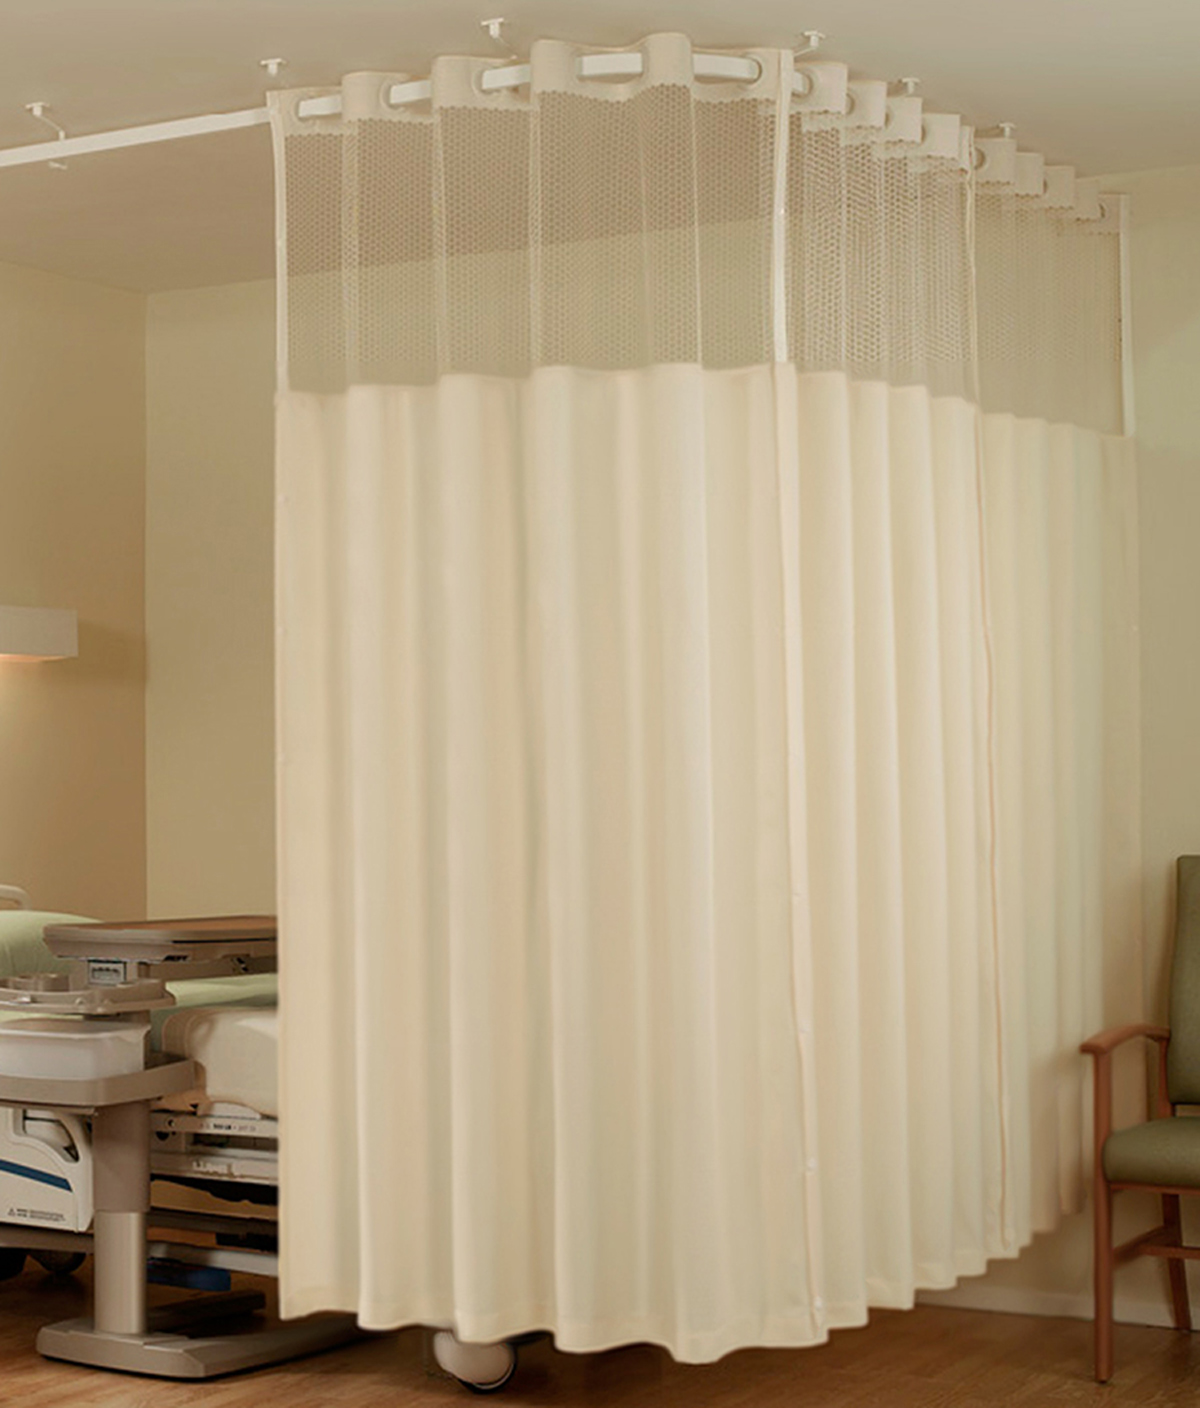 eco trax cubicle curtain system ecotex